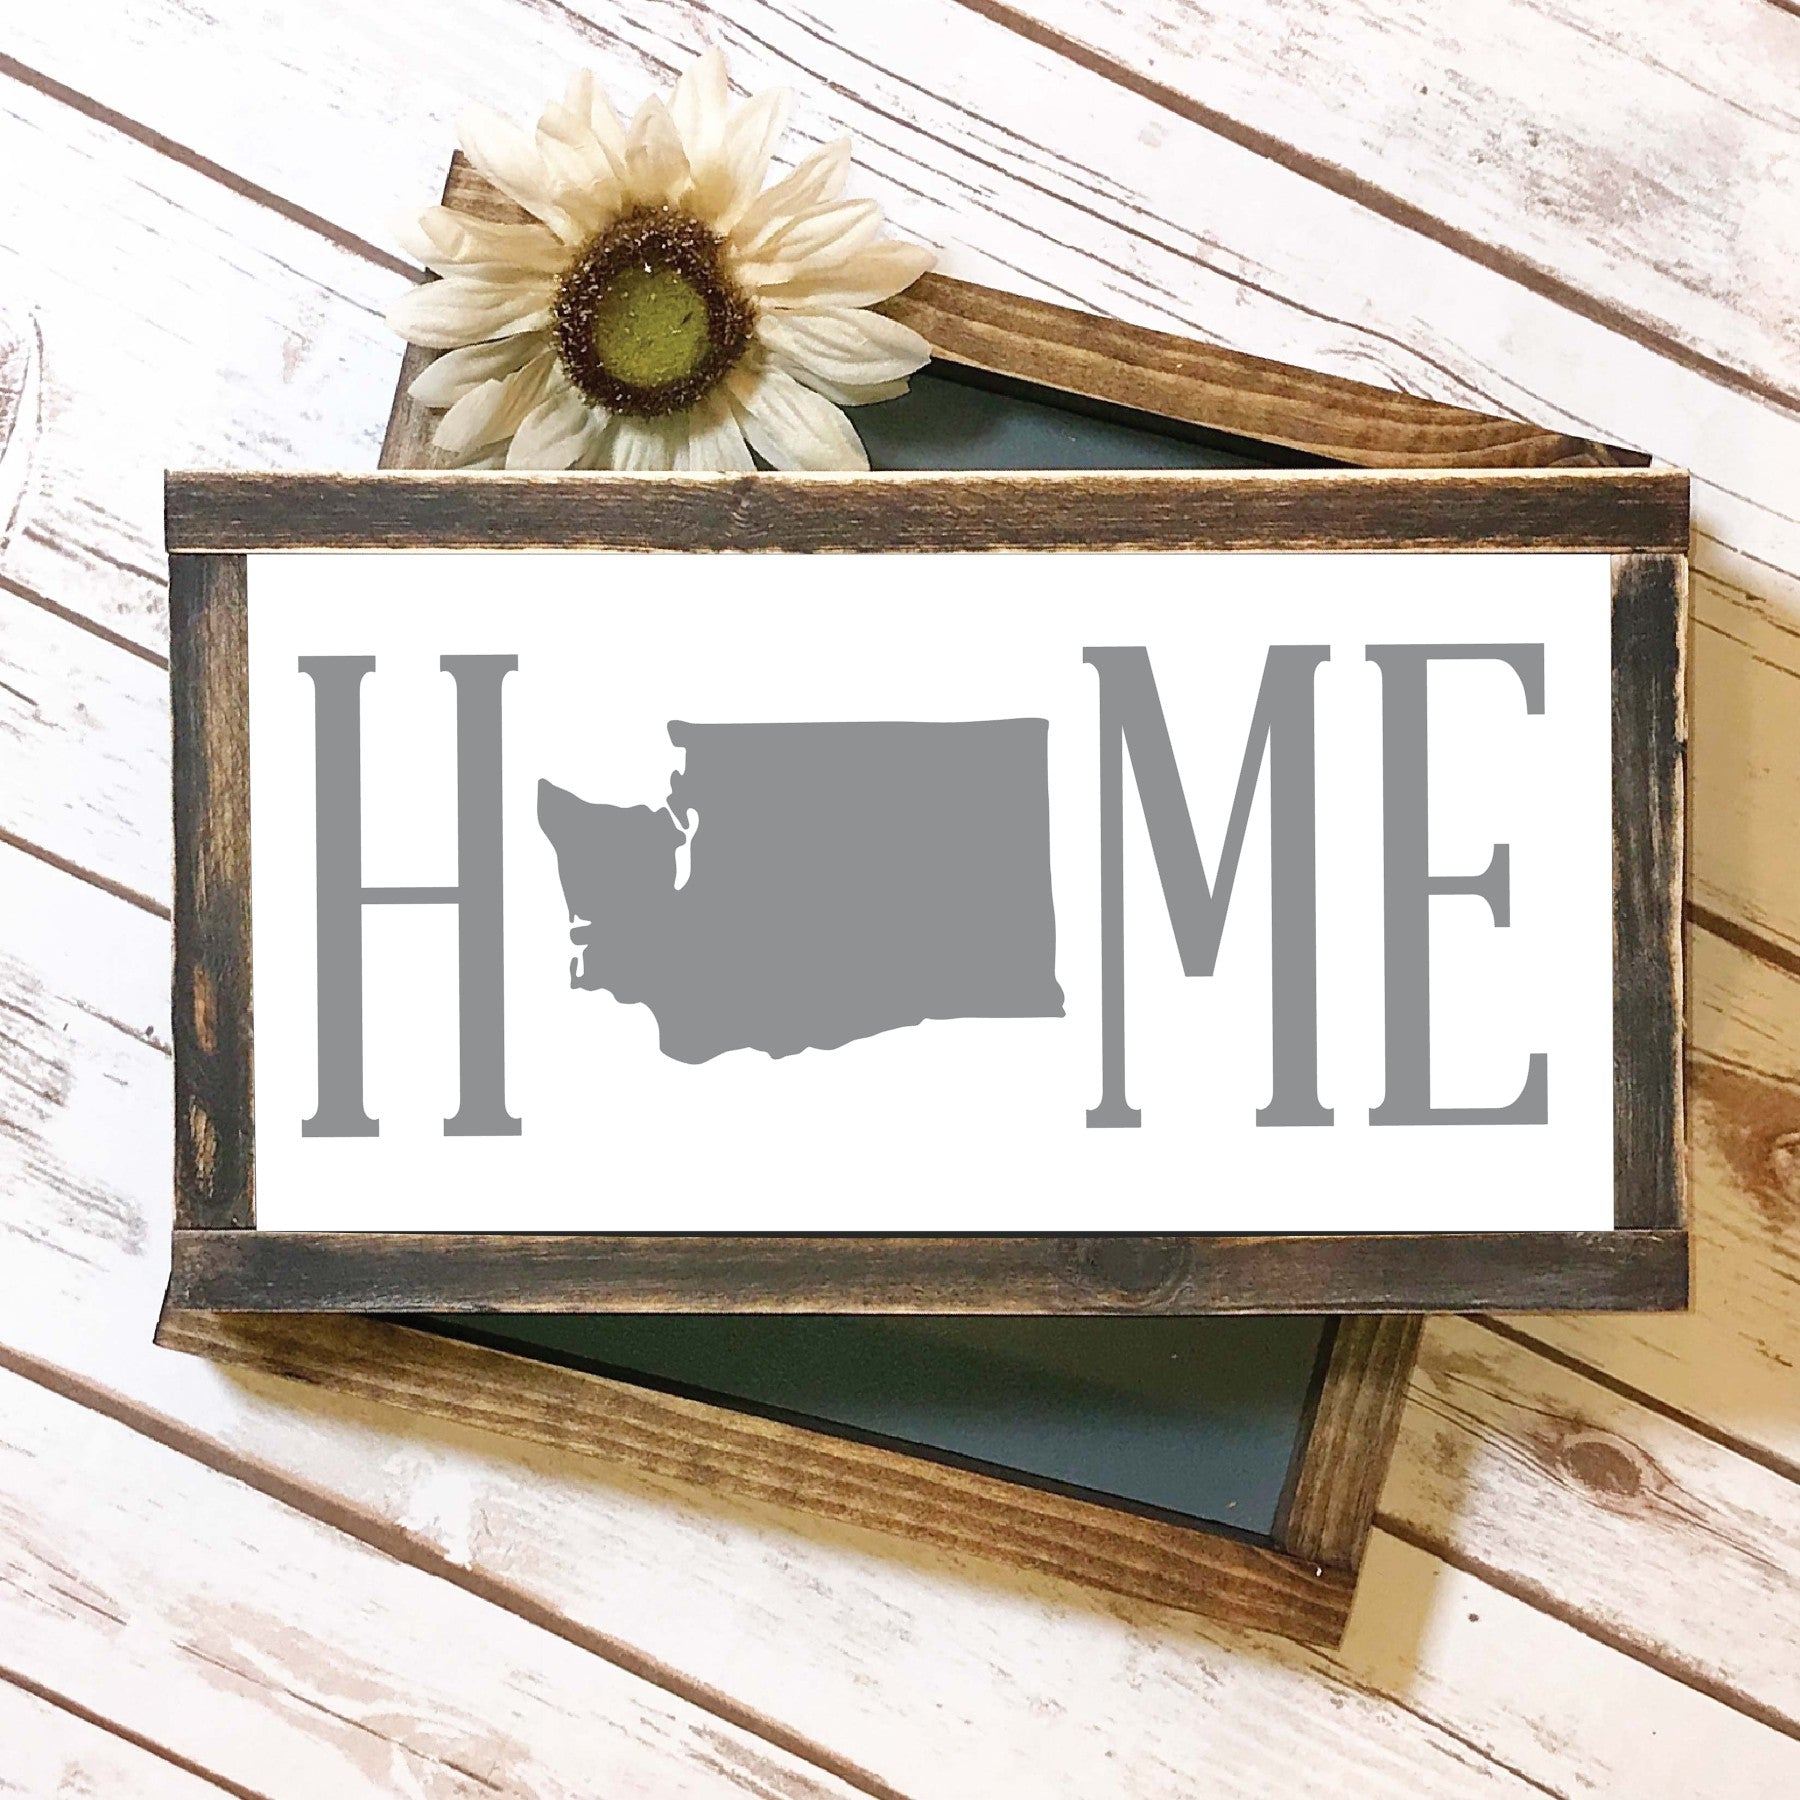 Home-Washington